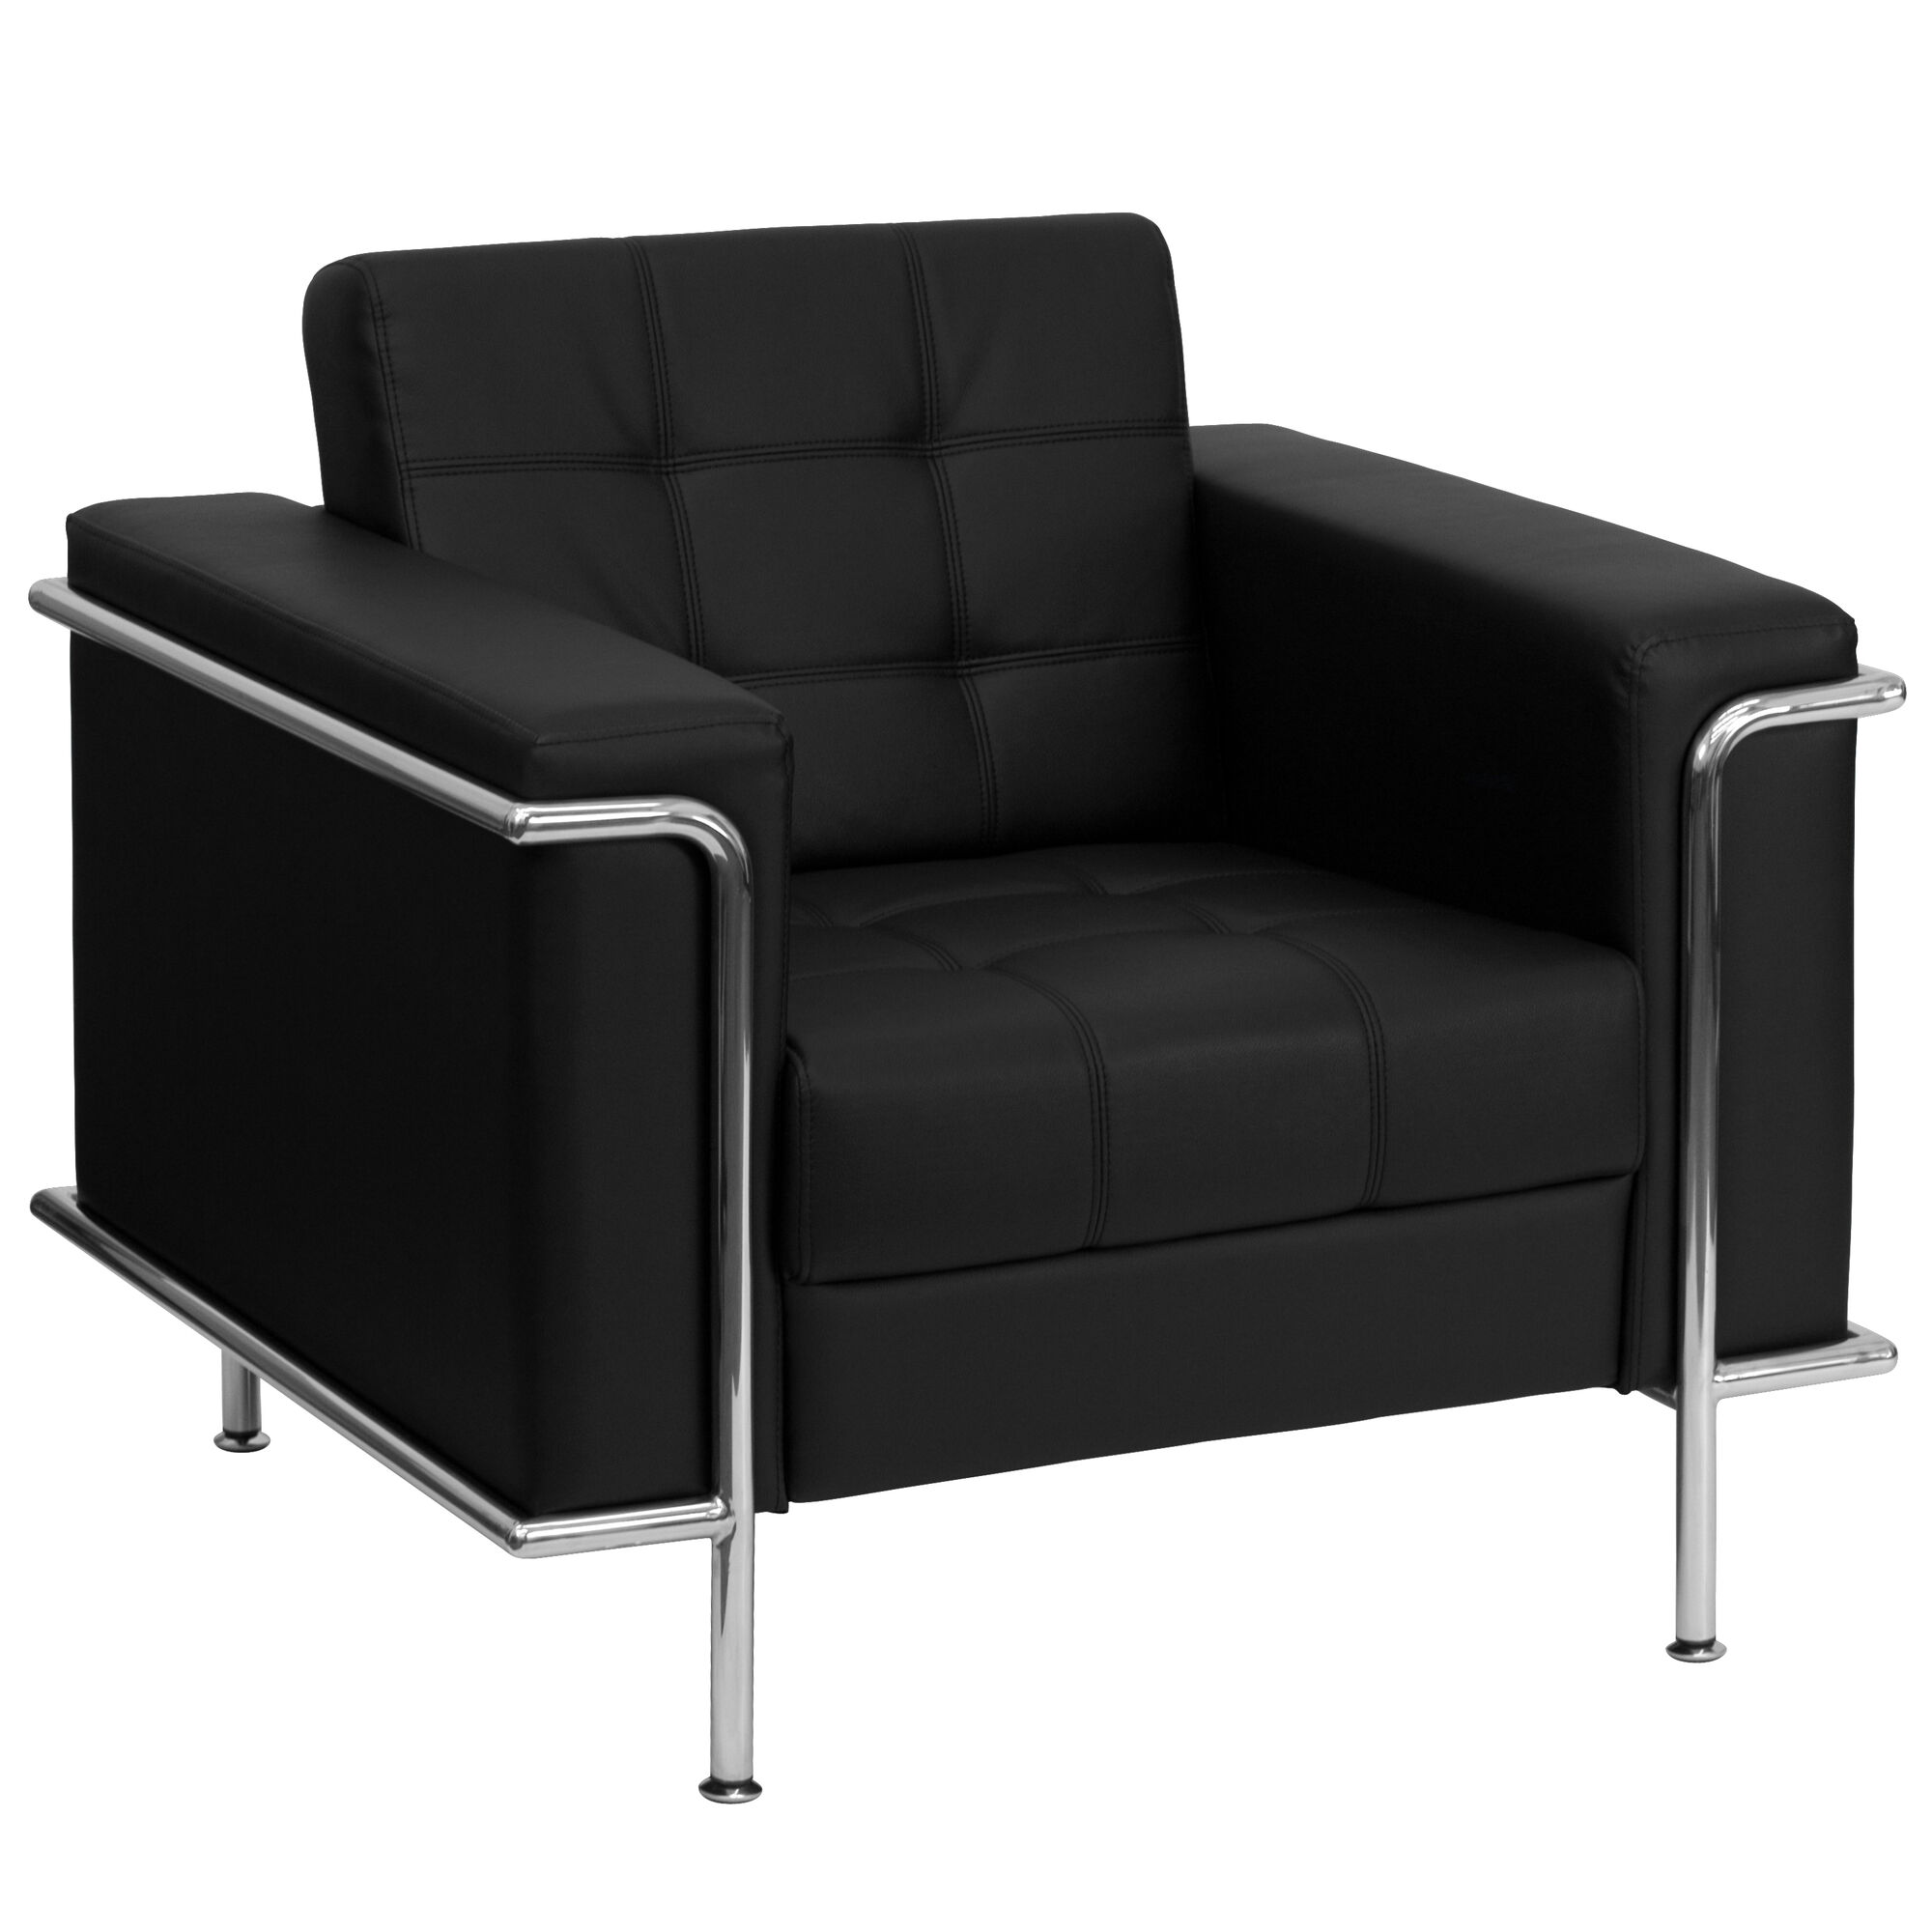 Tremendous Hercules Lesley Series Contemporary Black Leather Chair With Encasing Frame Cjindustries Chair Design For Home Cjindustriesco